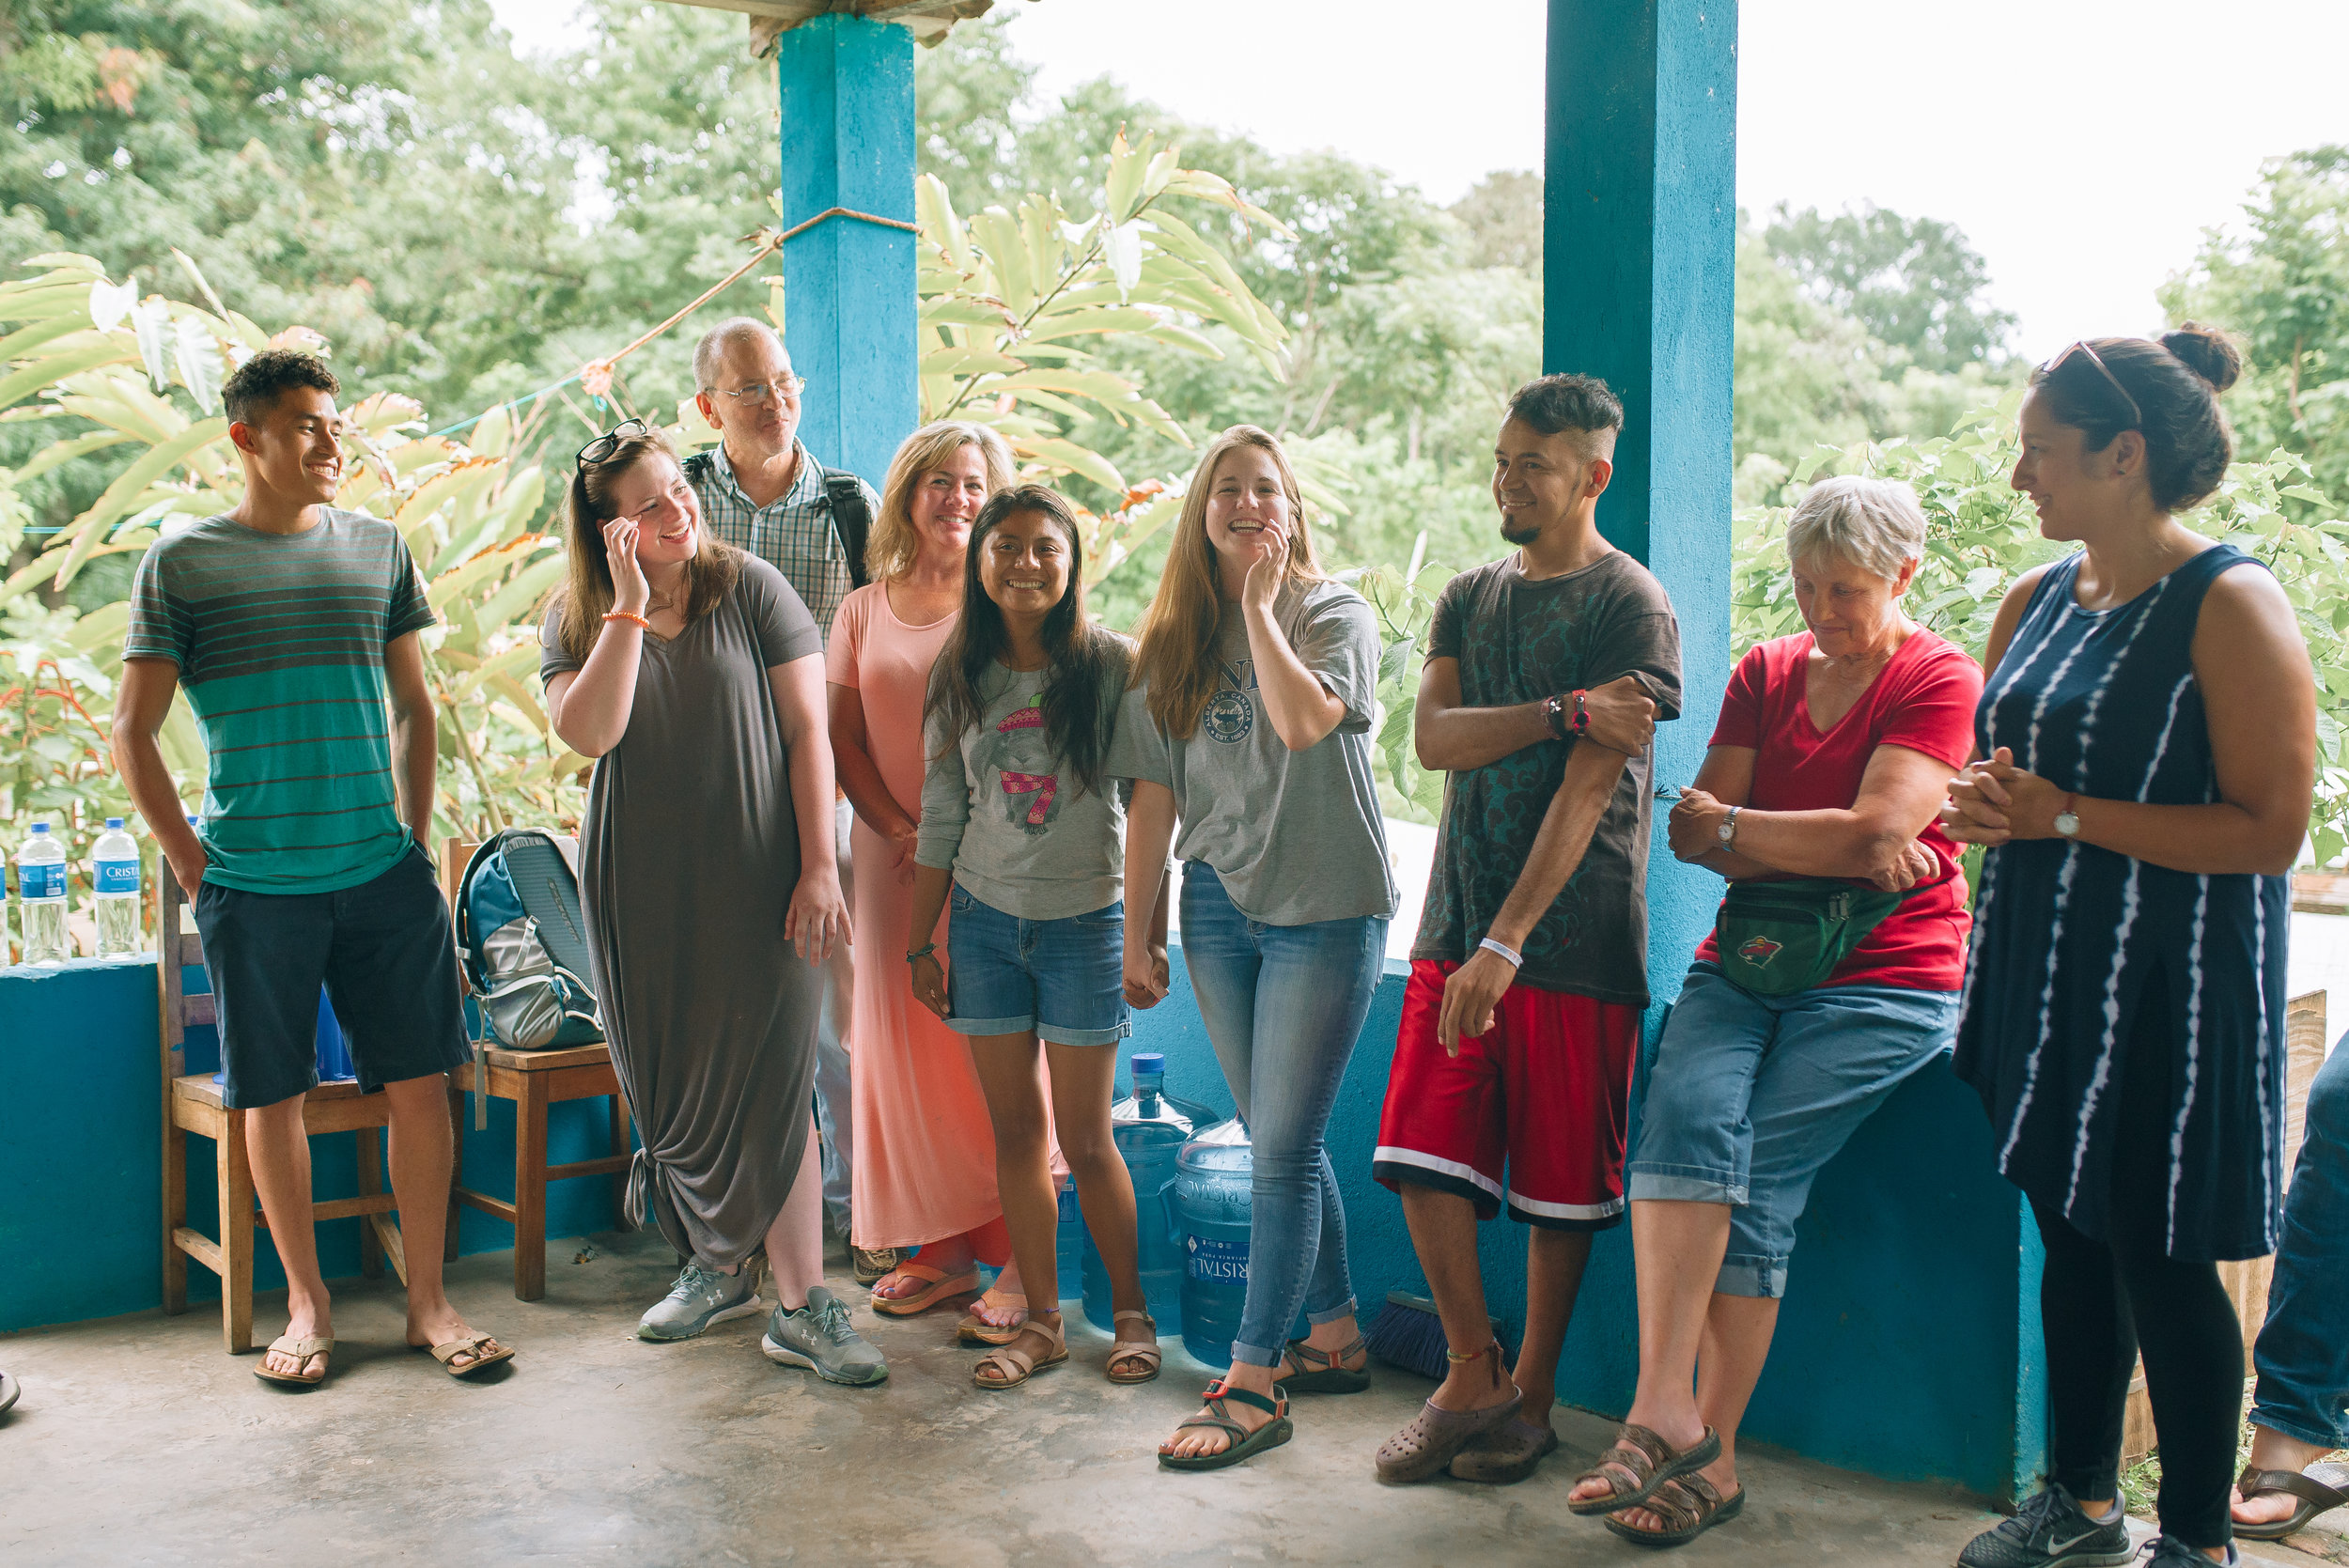 Institute student and team member, Lauren Garrison, was in El Salvador for a week before her family arrived. She was able to introduce her mother, father, and sister to her Salvadoran friends whom she had been serving with.